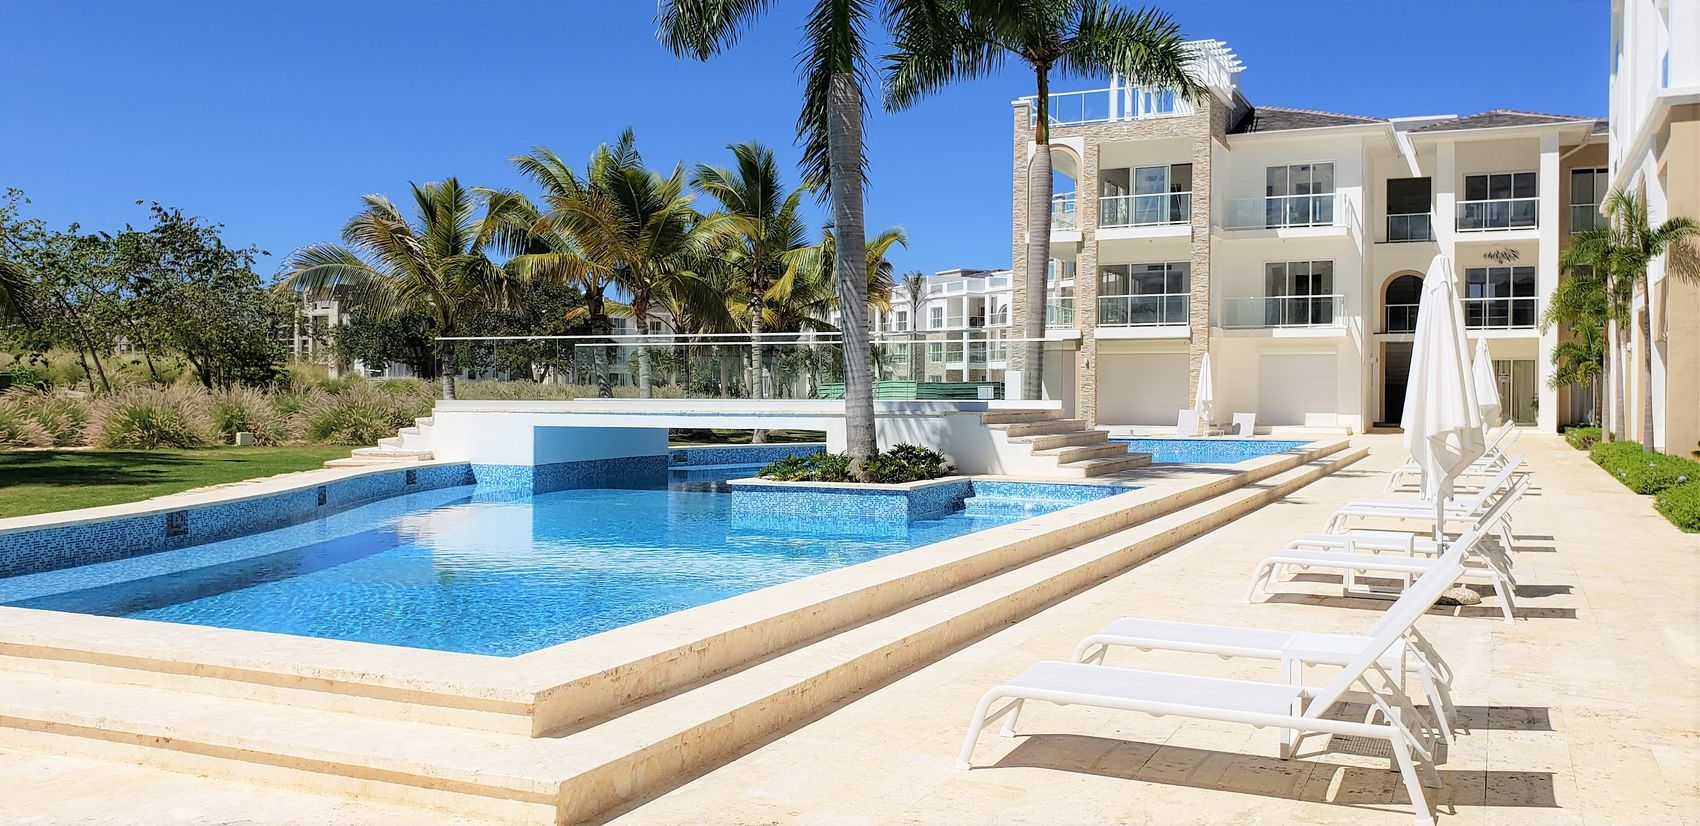 2 bedroom furnished apartment in a new project in Punta Cana (B102-CP)